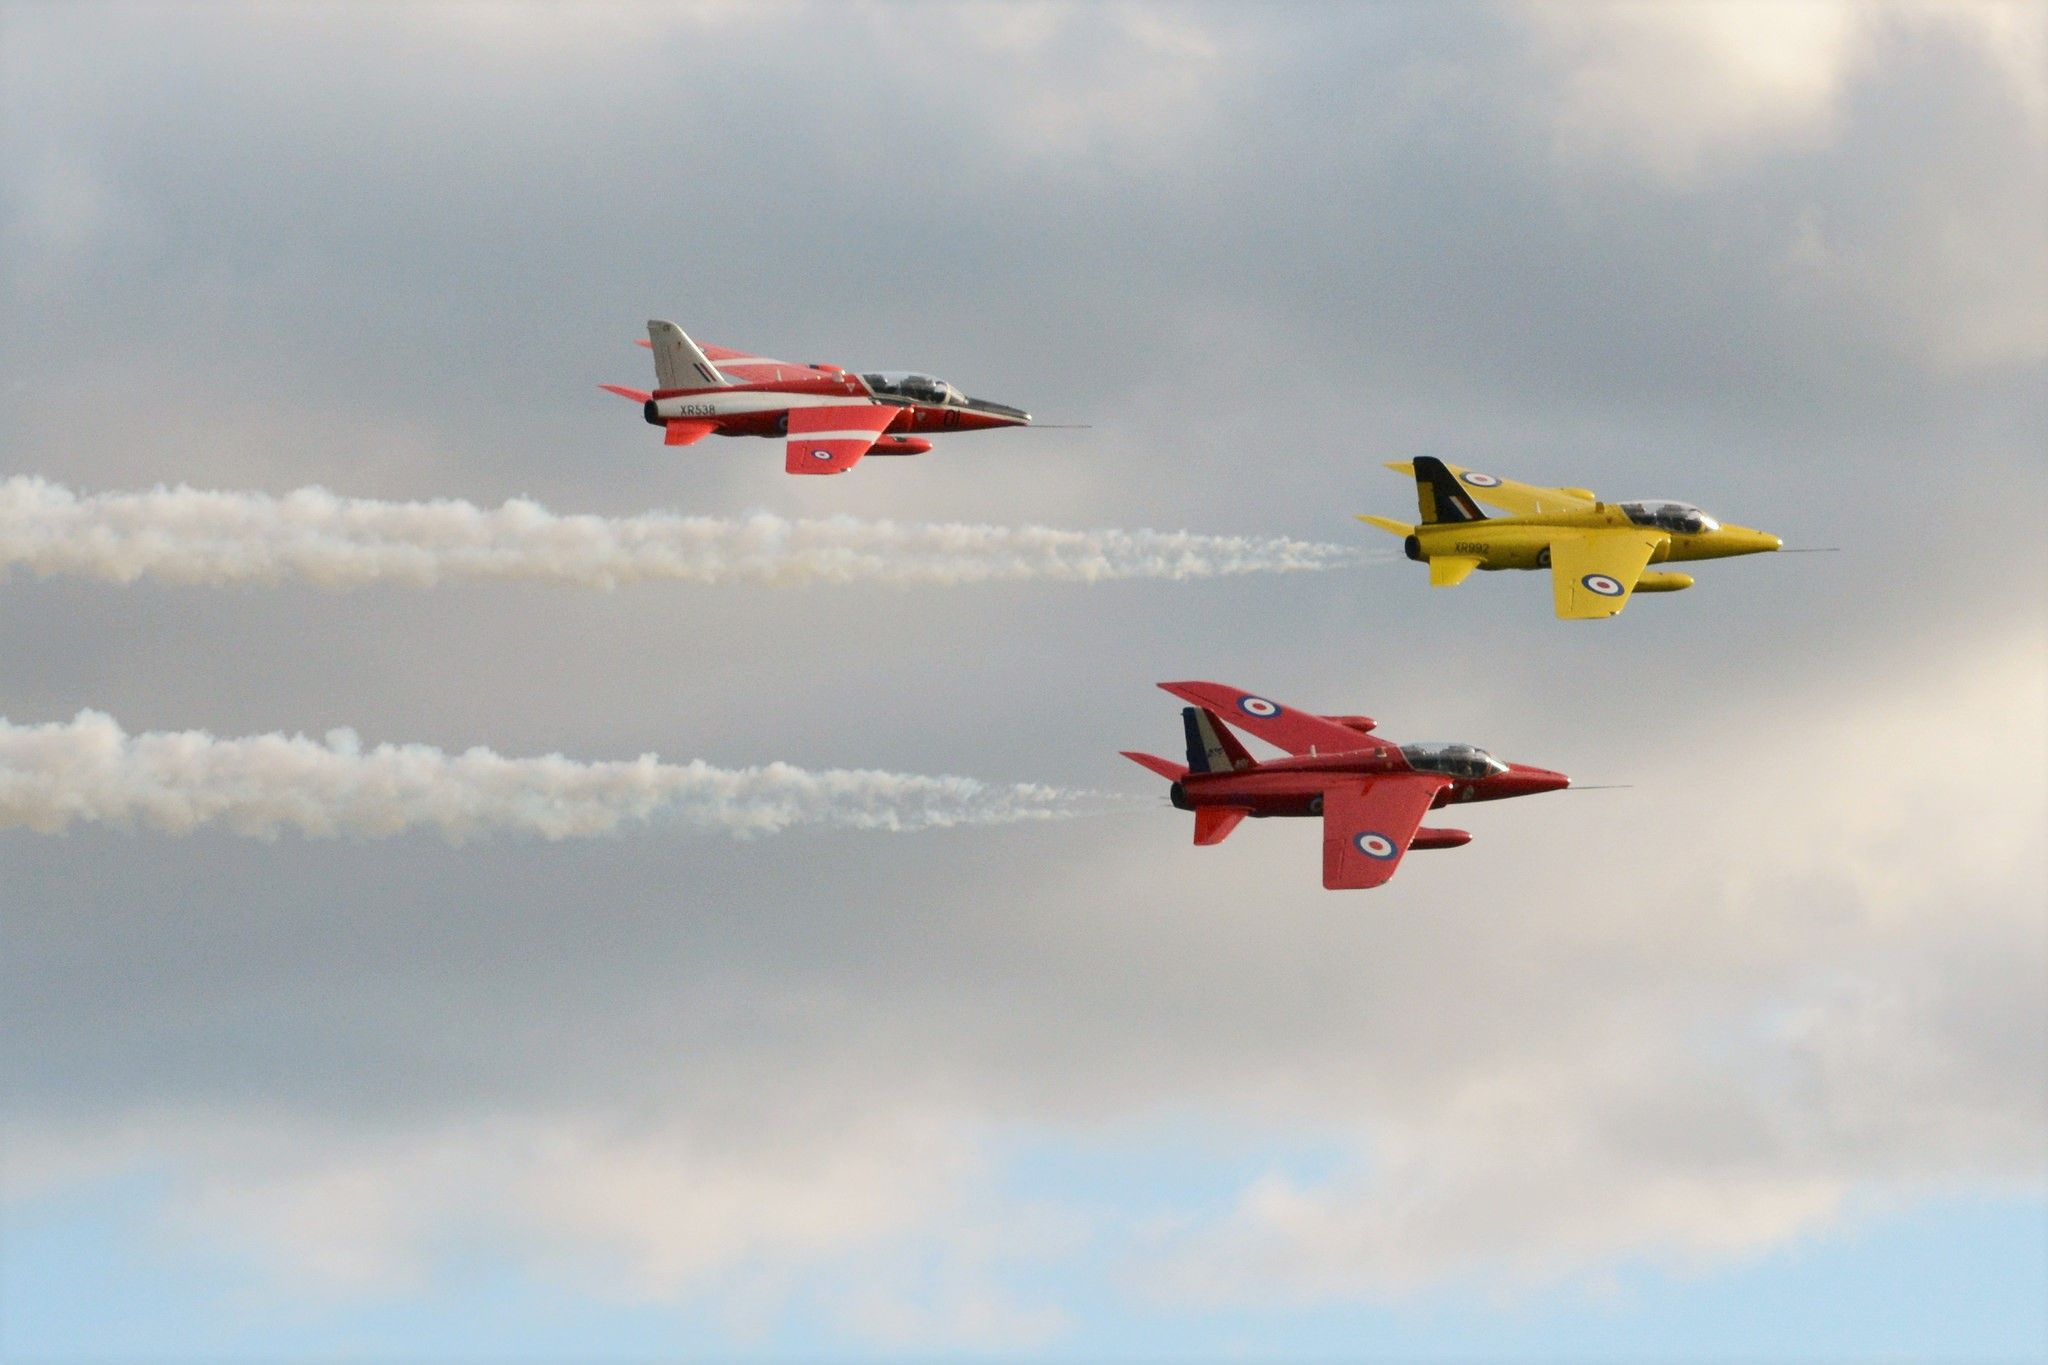 The gnat was operated by the RAF aerobatic demonstration team, first known as the Yellowjacks, and then as the Red Arrows. Many are still in private hands today.